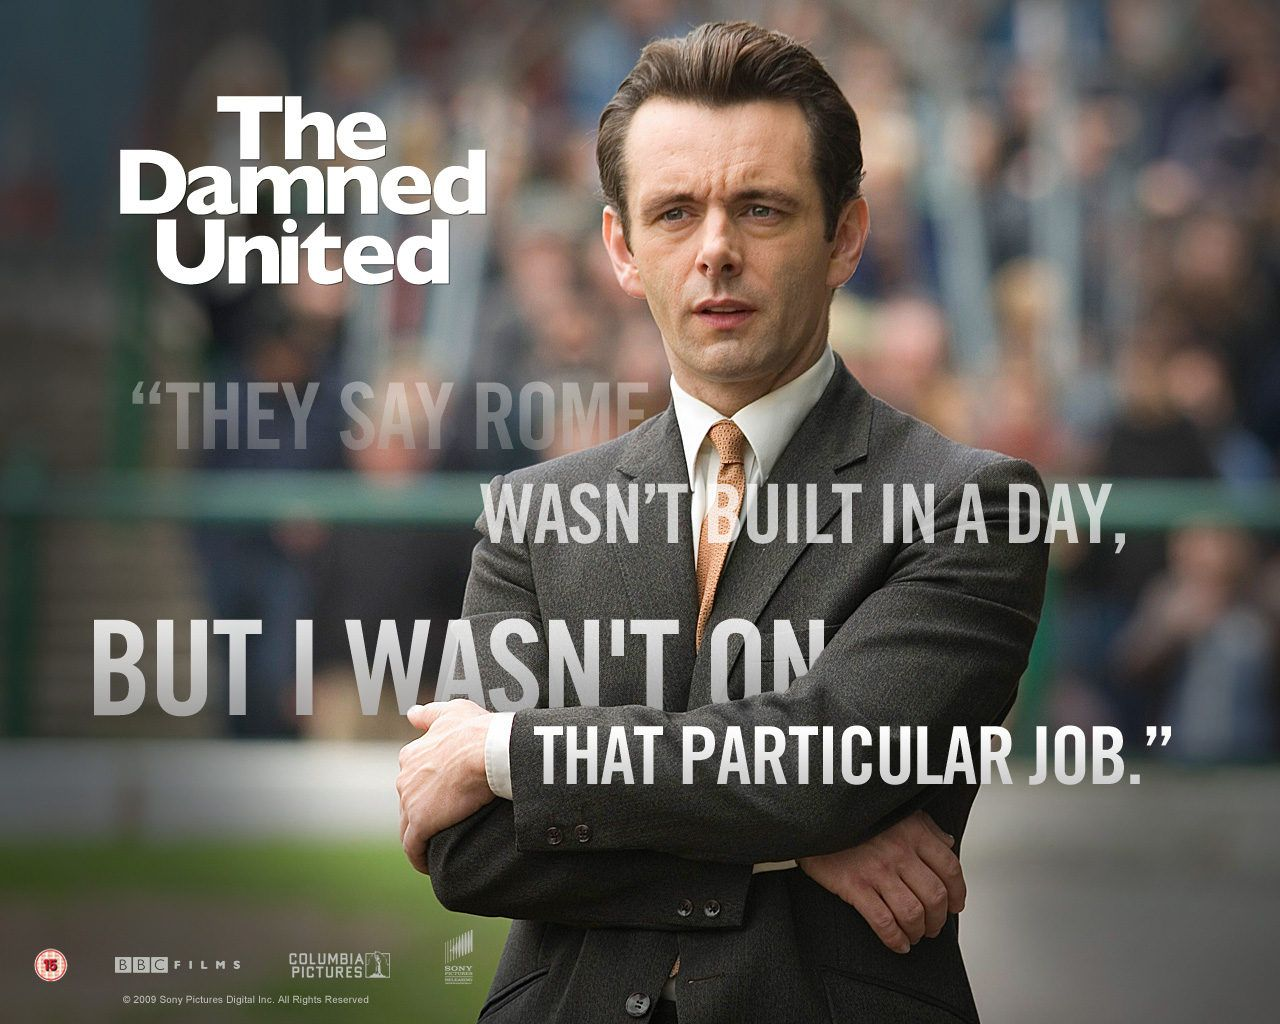 Michael Sheen Wallpaper The Damned United The Damned United Michael Sheen The Unit